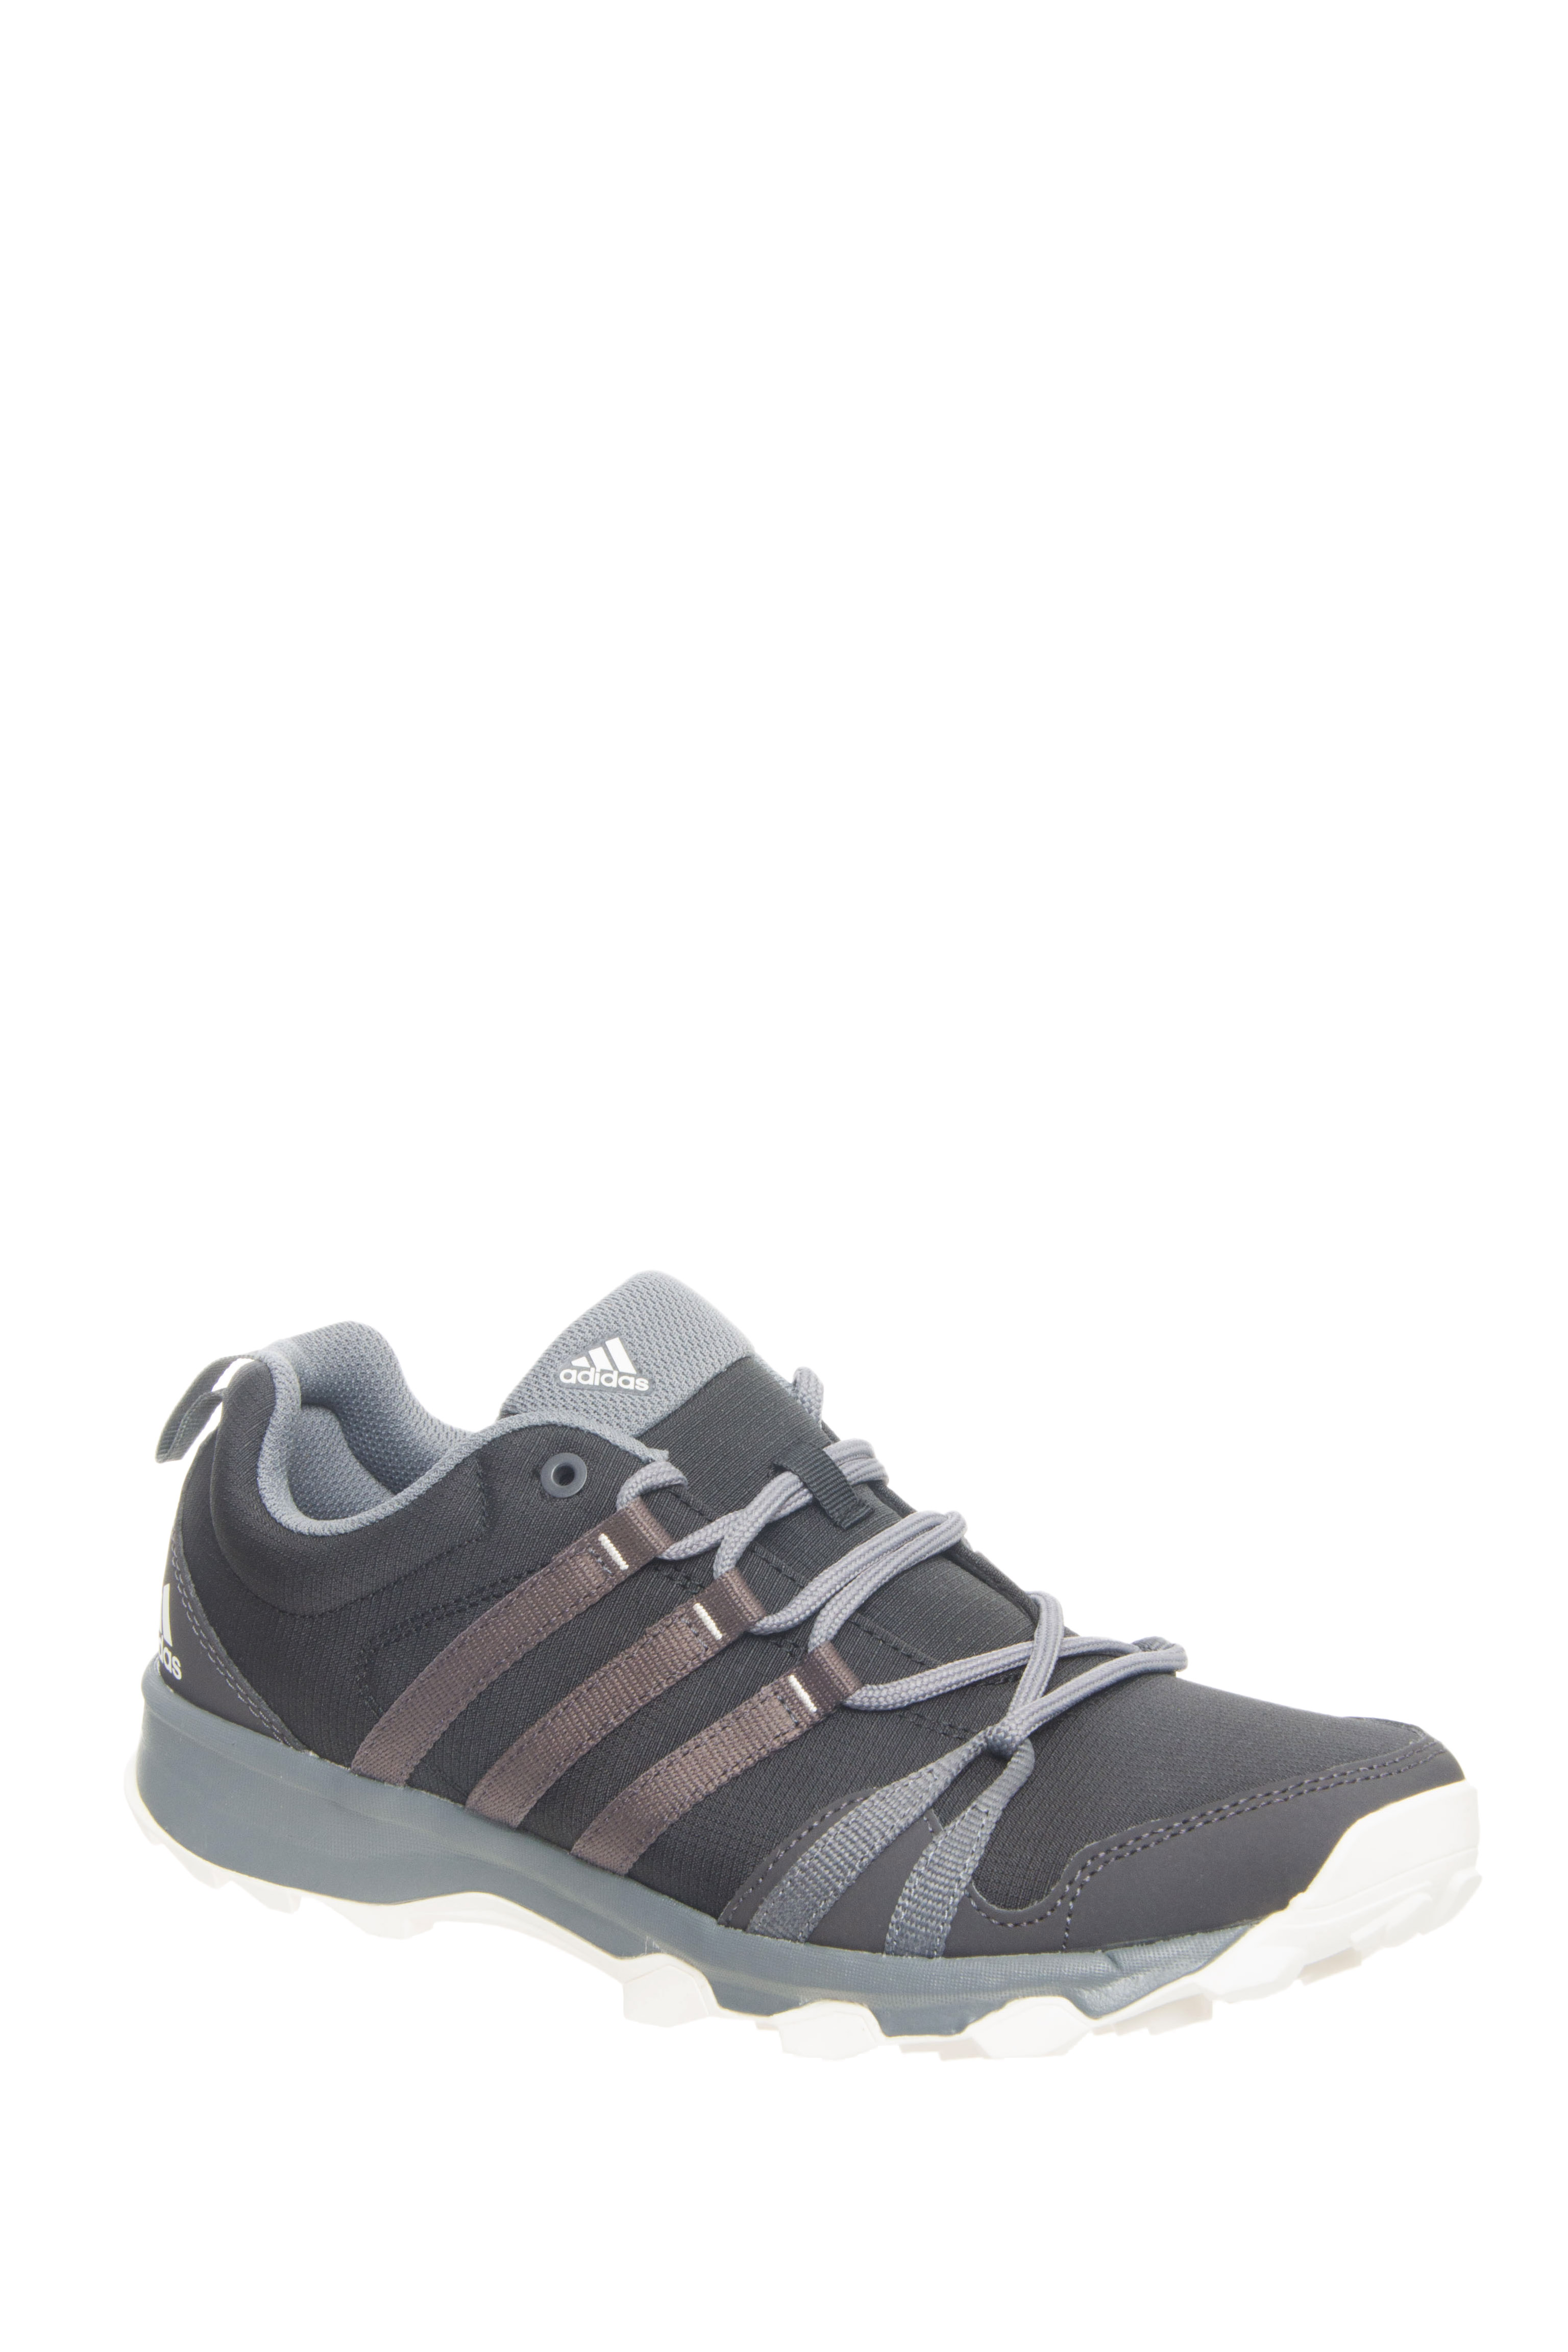 Adidas Outdoor Tracerocker Lace Up Running Sneakers - Grey / Black